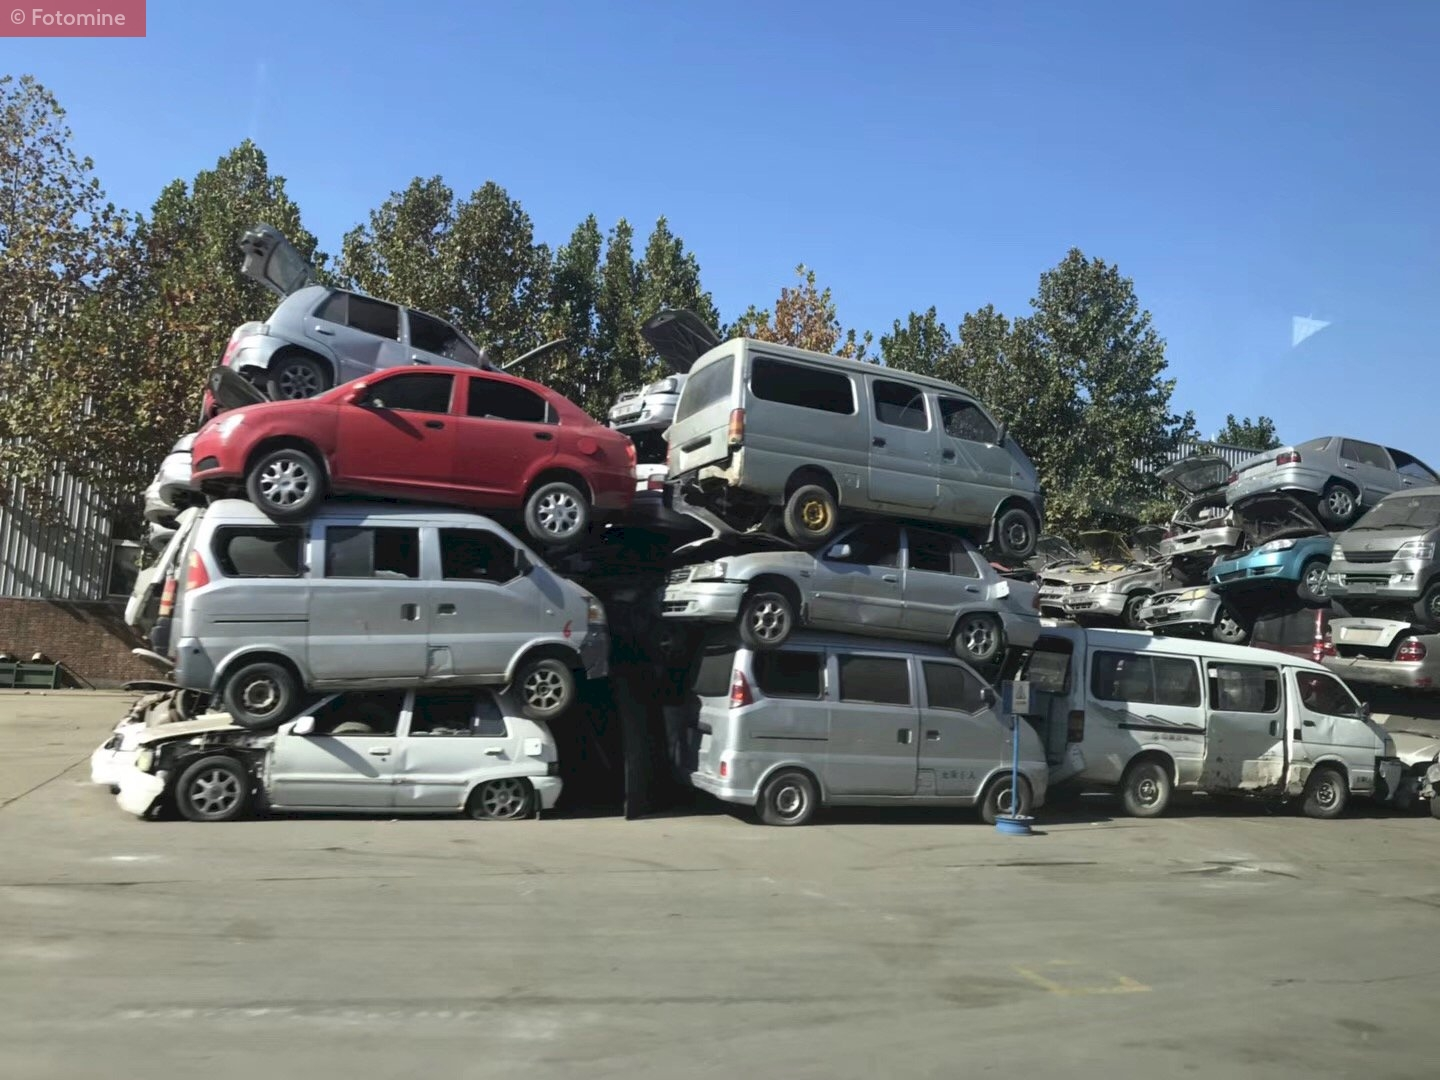 Auto Recycling in China